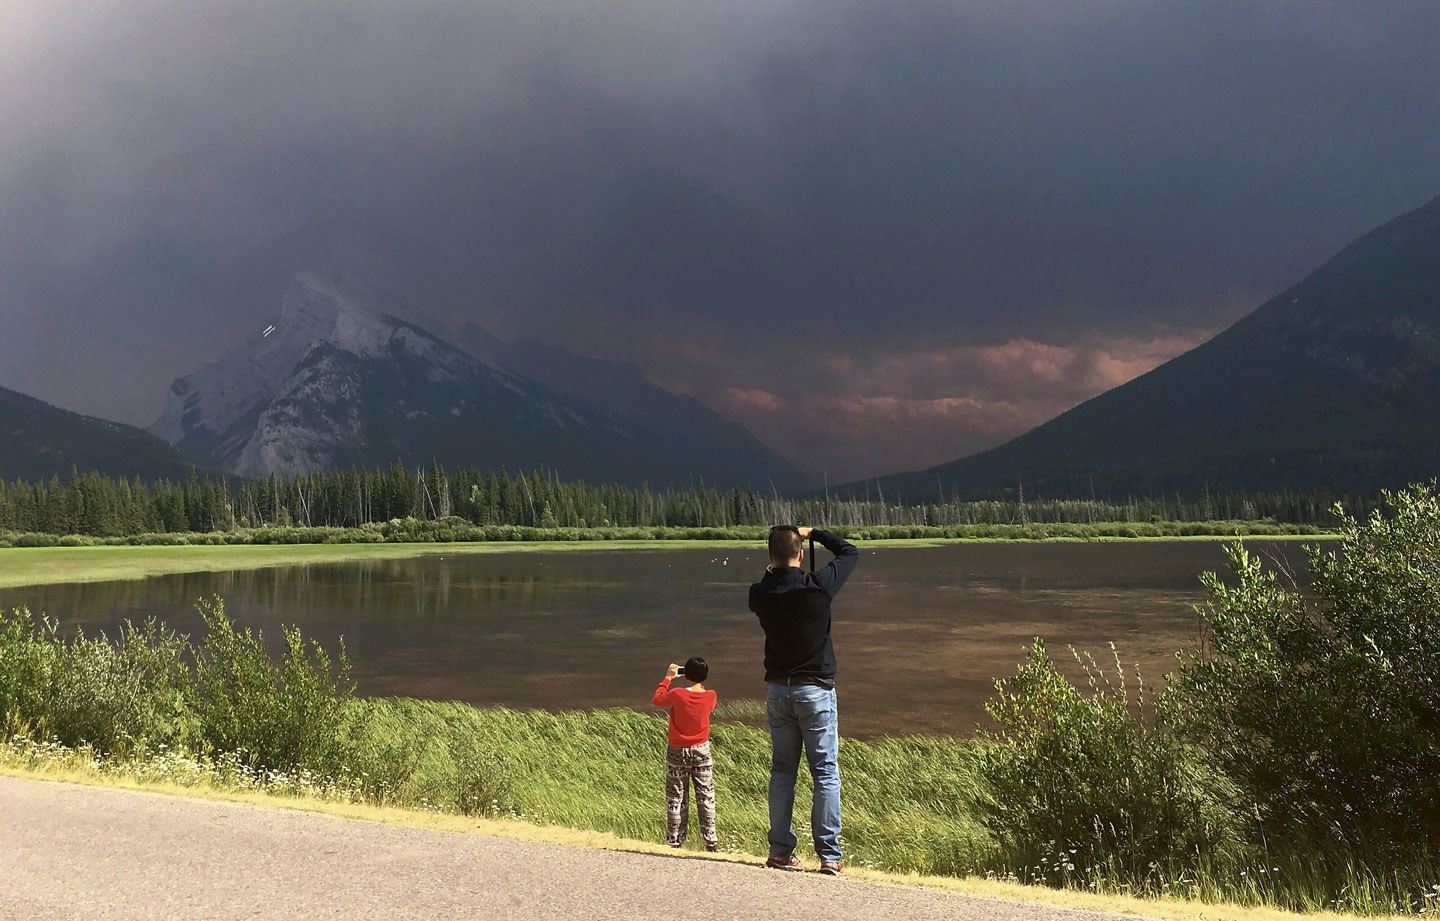 Tourists to Banff National Park in Alberta take photos of Mt. Rundle and the Vermillion lakes as smoke from a forest fire in Kootenay National Park in British Columbia blankets the area, Sunday July 16, 2017. (Adrian Wyld/The Canadian Press via AP)